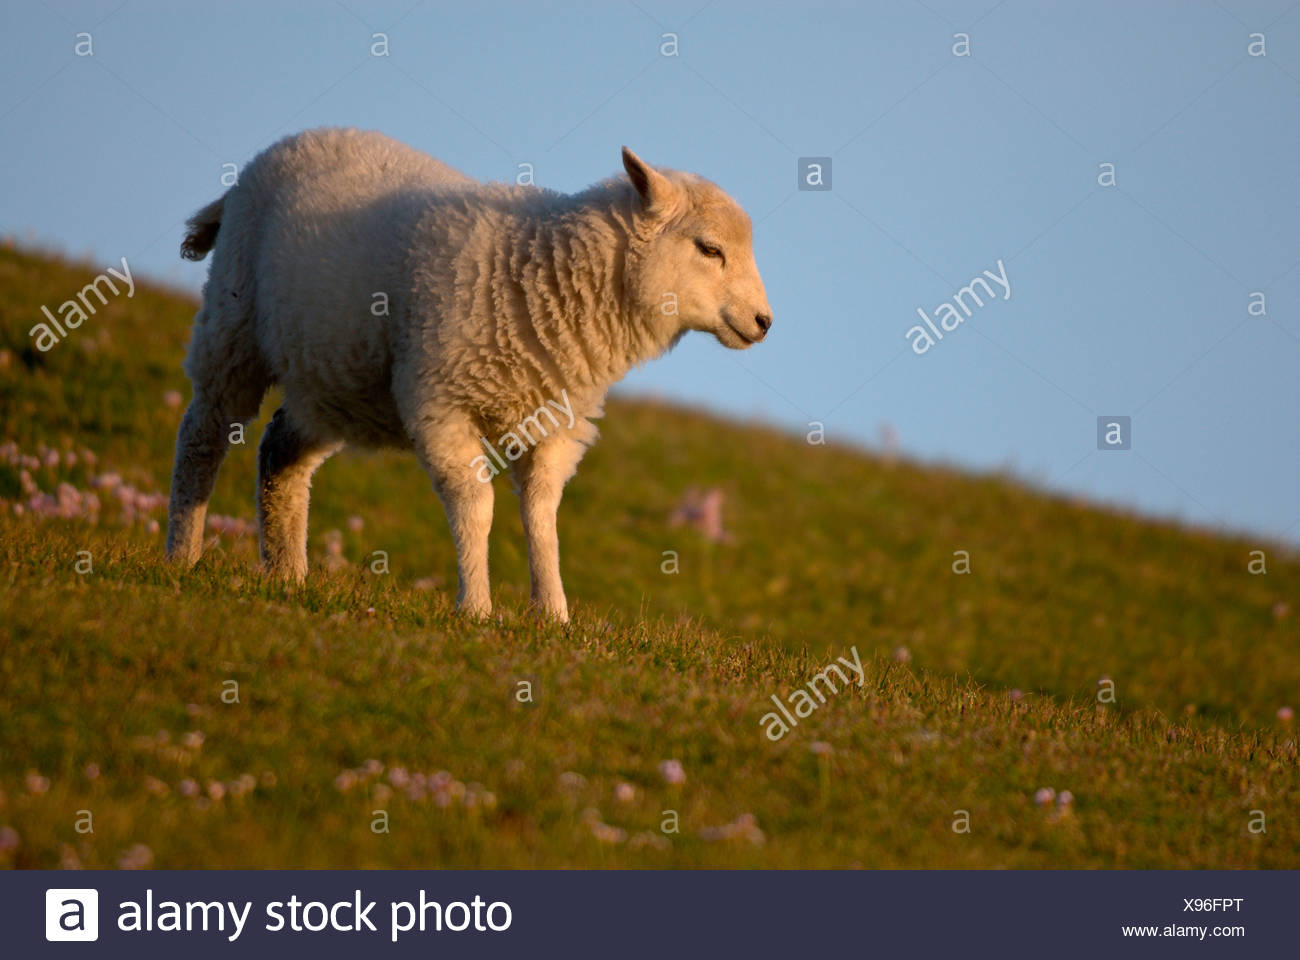 Young sheep in the evening light, looking to the left, Fair Isle, United Kingdom, Europe - Stock Image